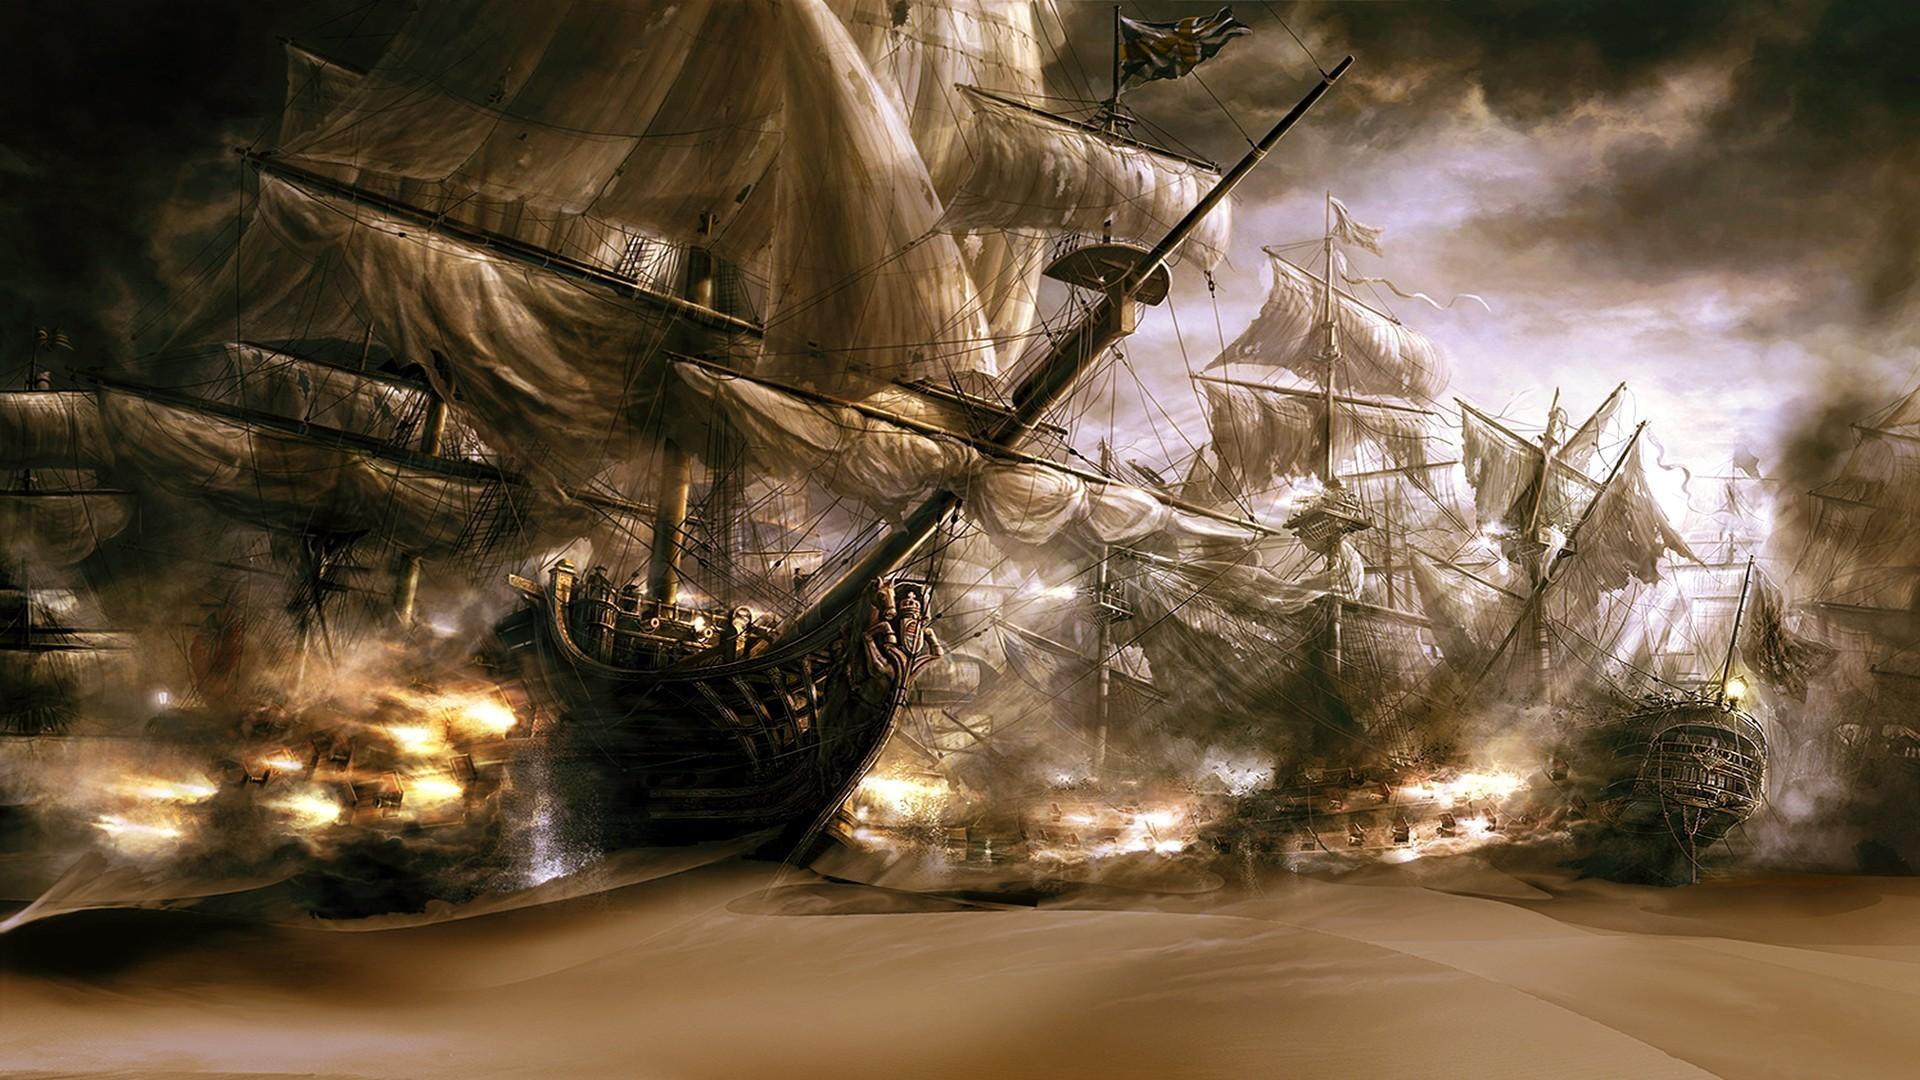 1920x1080 Ghost Pirate Ship Wallpaper For Iphone